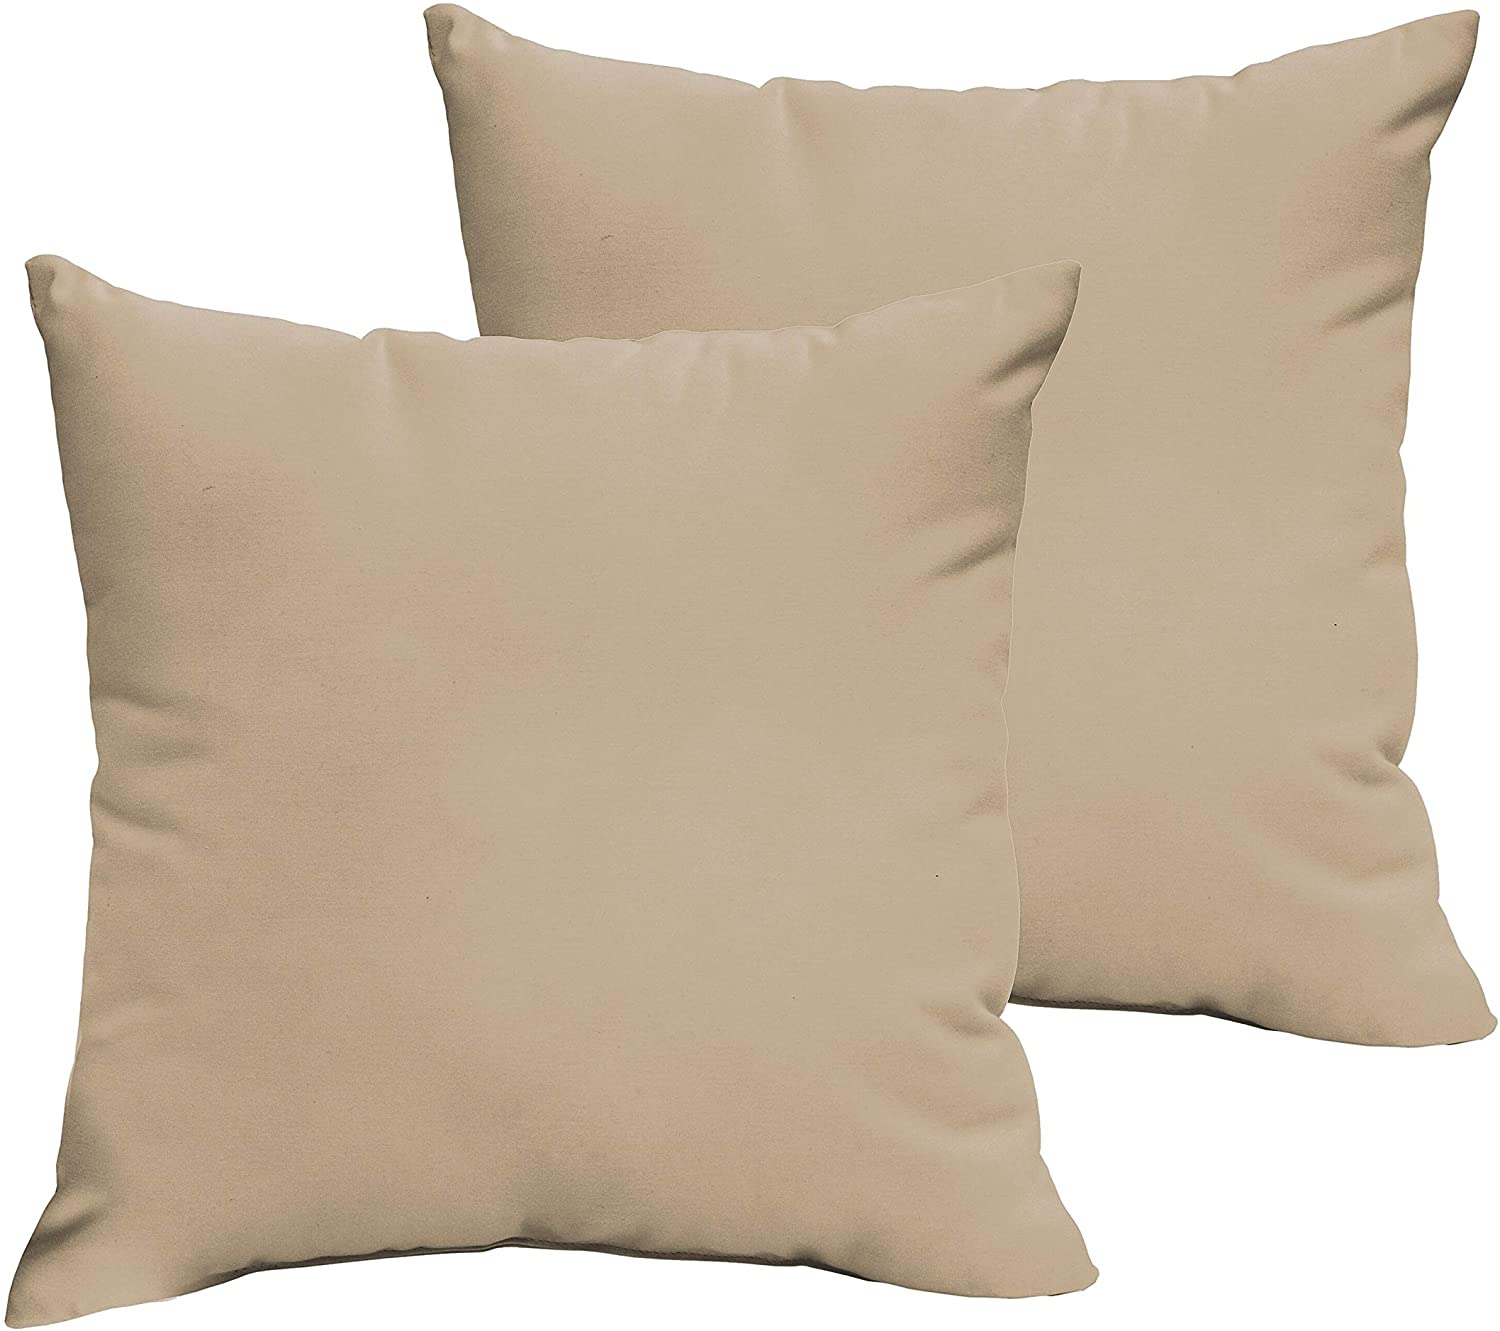 Beige 22 X 22 inch Indoor/Outdoor Knife Edge Pillow Set White Solid Modern Contemporary Traditional Transitional Fabric Polyester Fade Resistant Uv